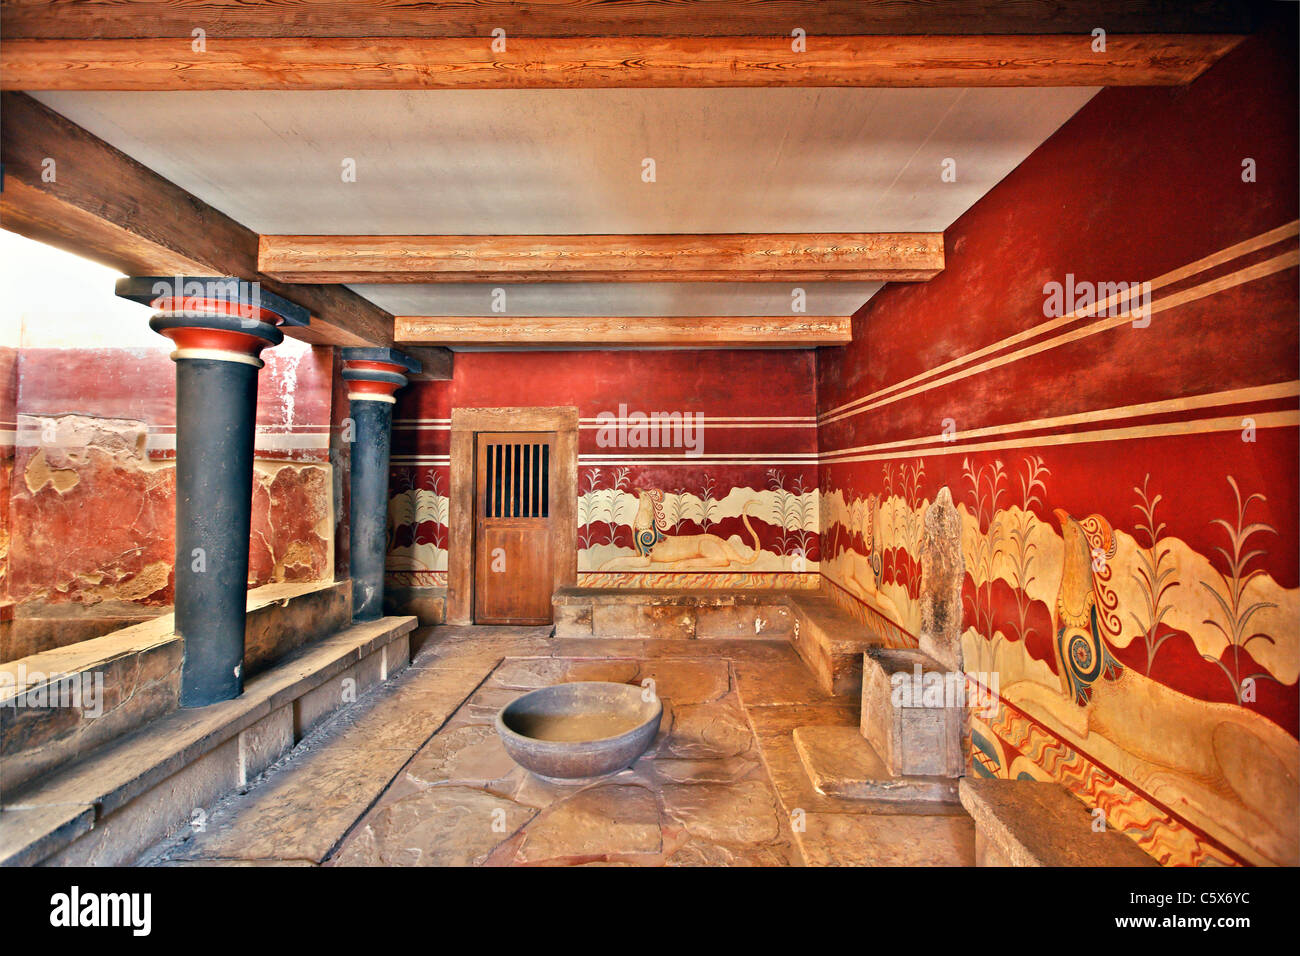 The hall of the throne in the Minoan Palace of Knossos, Heraklion, Crete, Greece - Stock Image